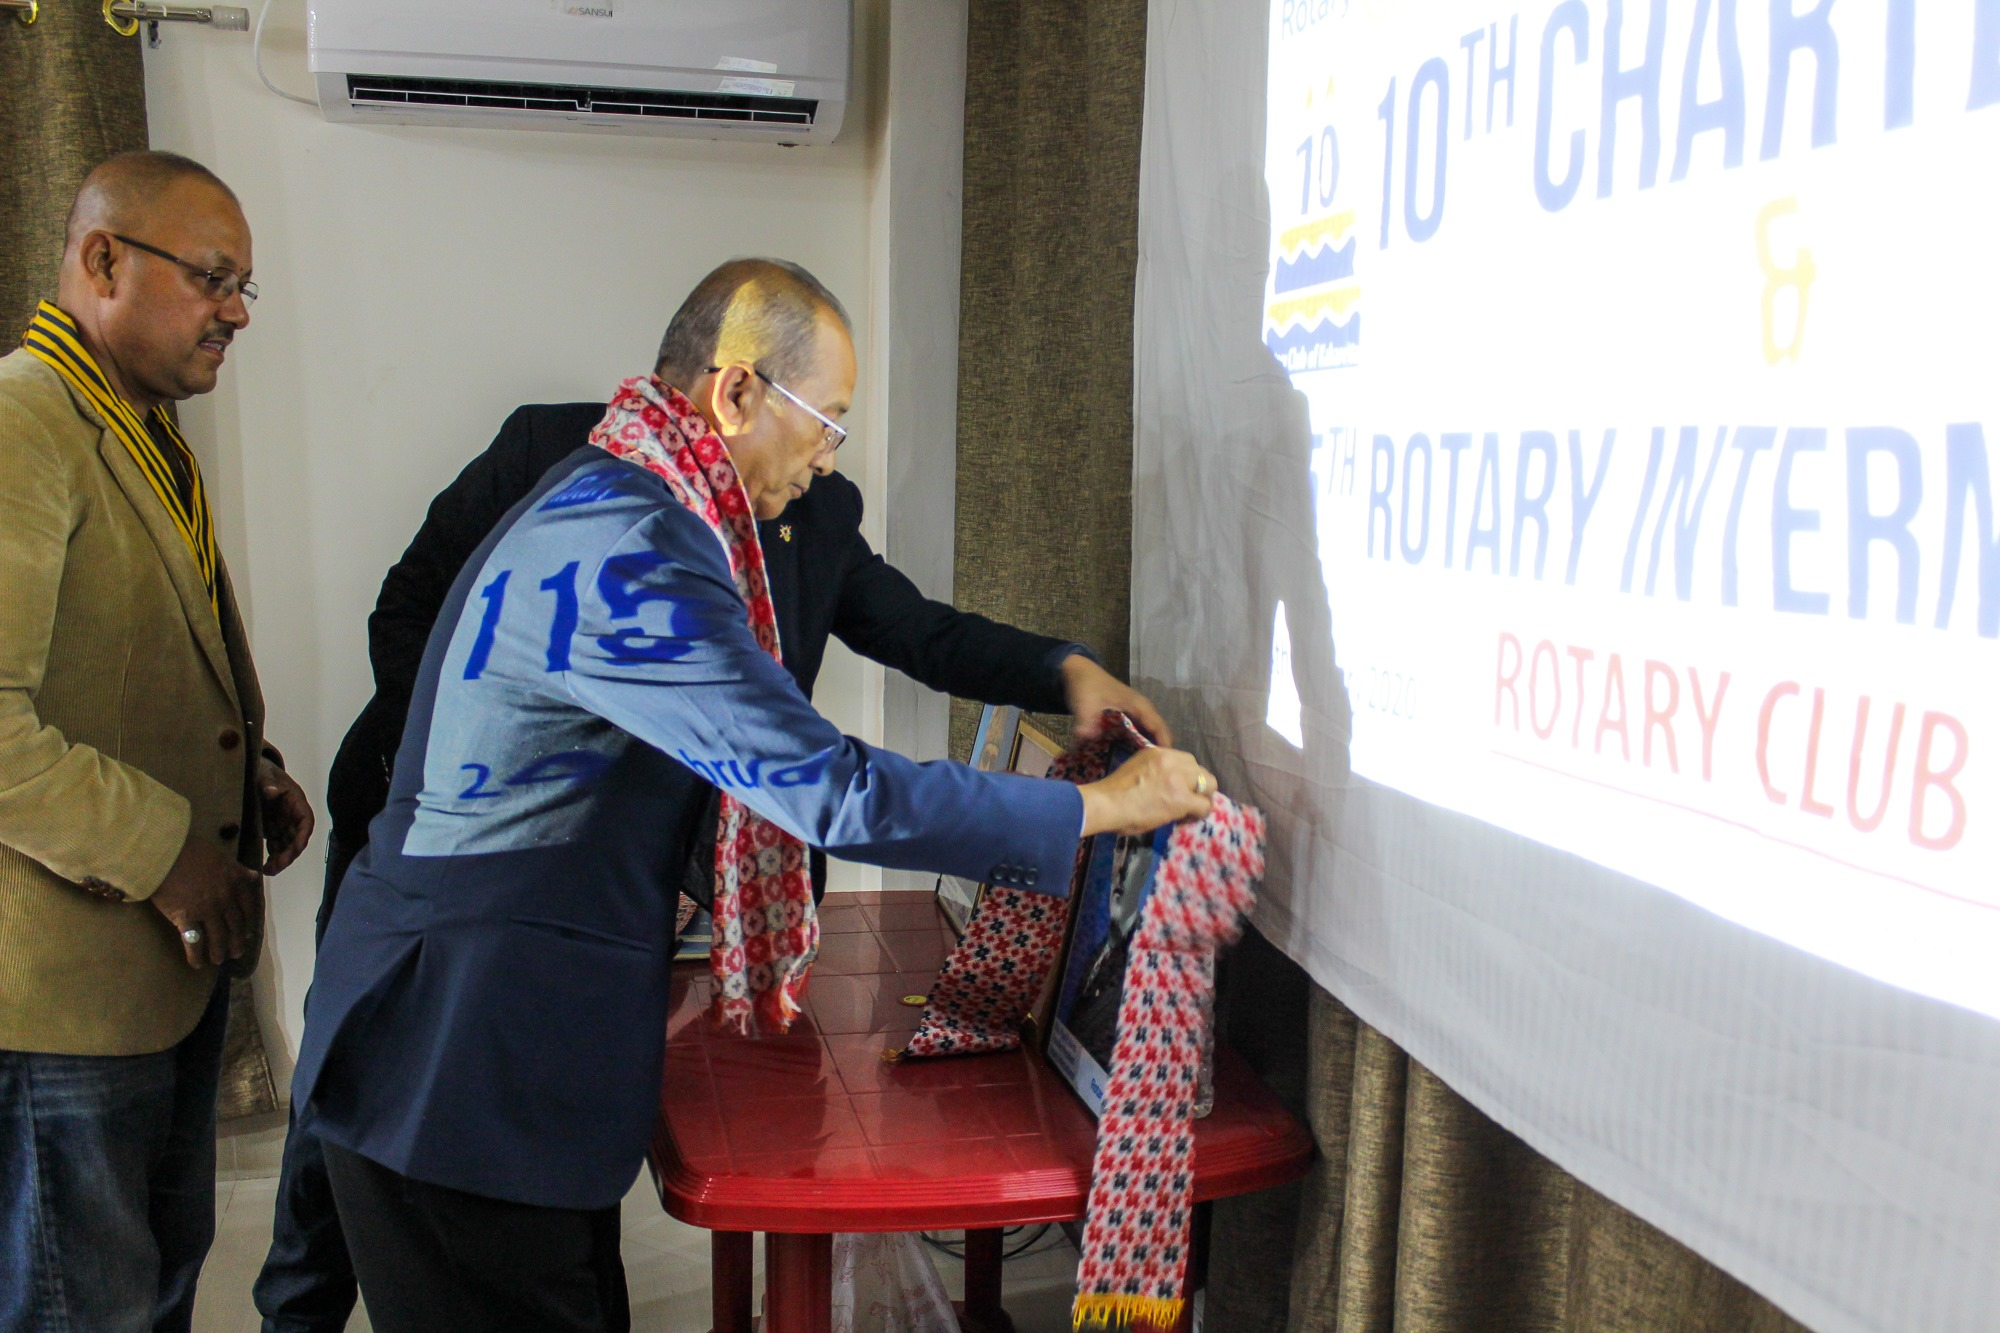 10th Charter Day 115th Rotary International Day 1